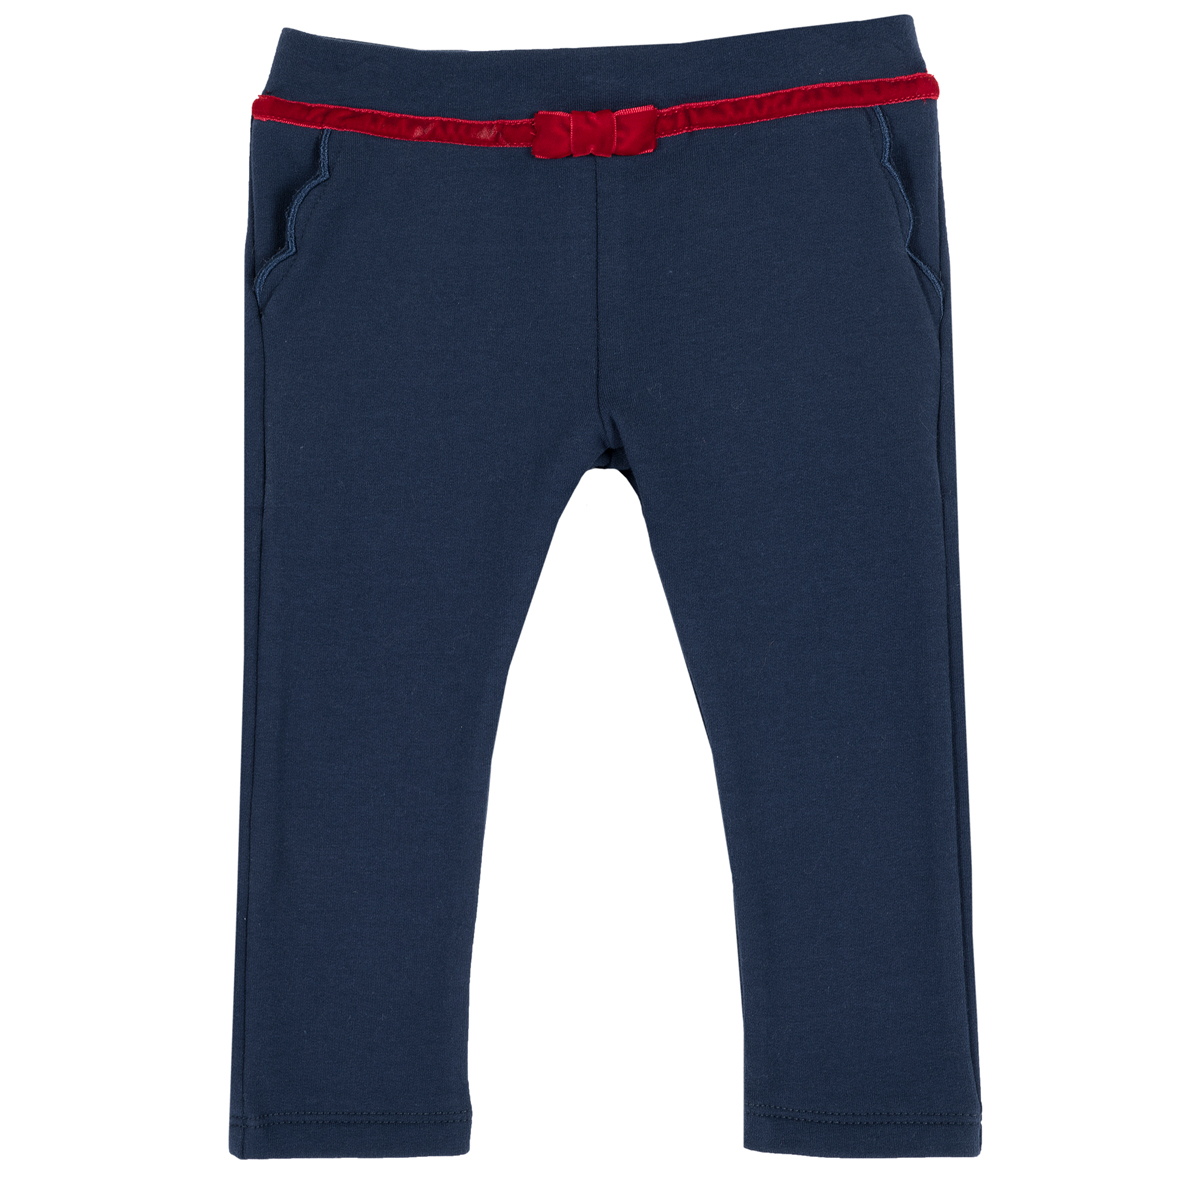 Pantalon lung copii Chicco, fundita catifea, albastru, 08049 din categoria Pantaloni copii